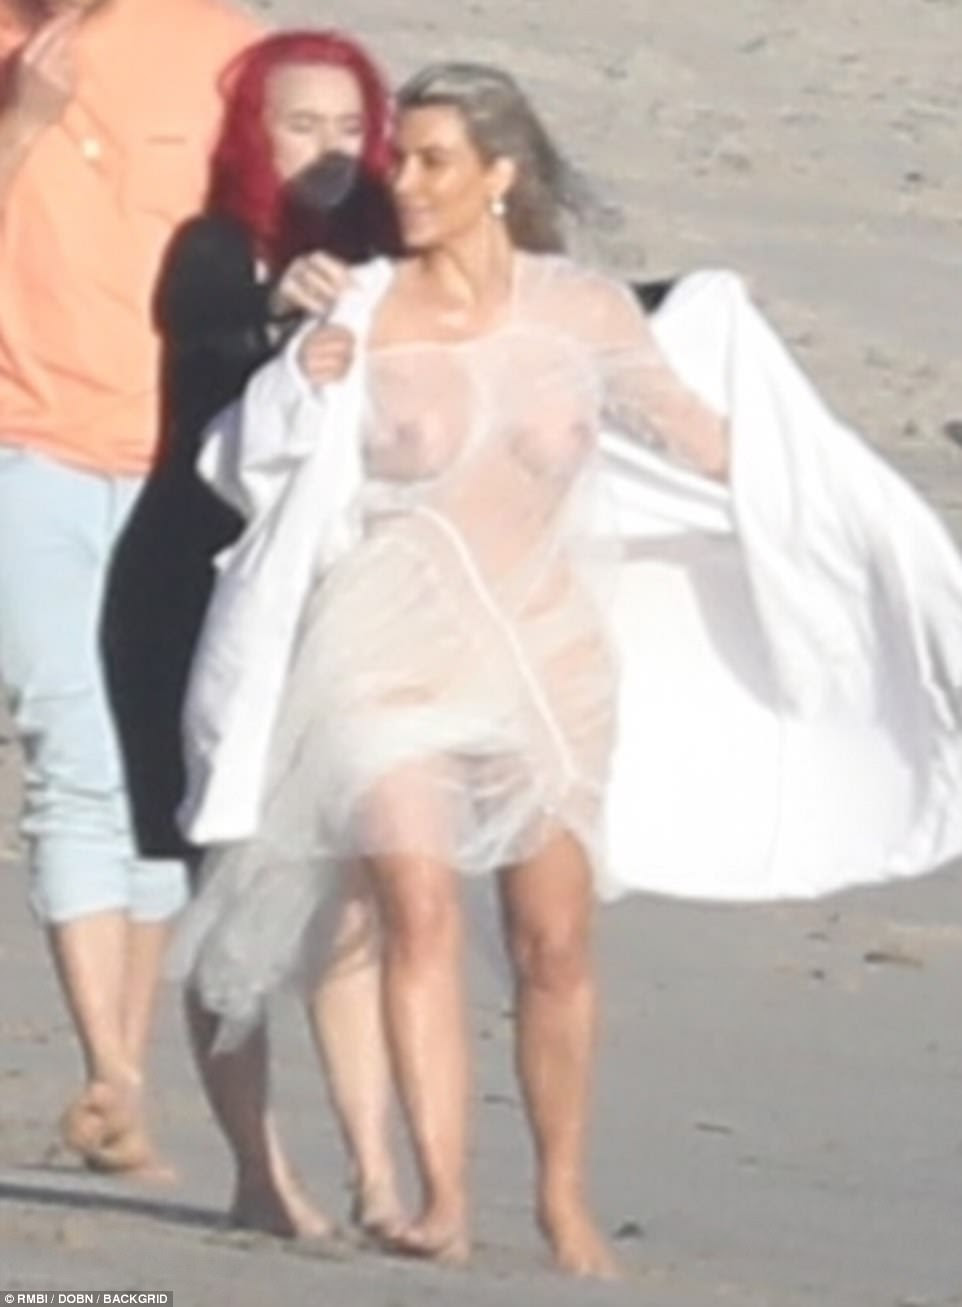 Kim Kardashian shows off her nipples in?see-through outfit for beach photoshoot (photos)